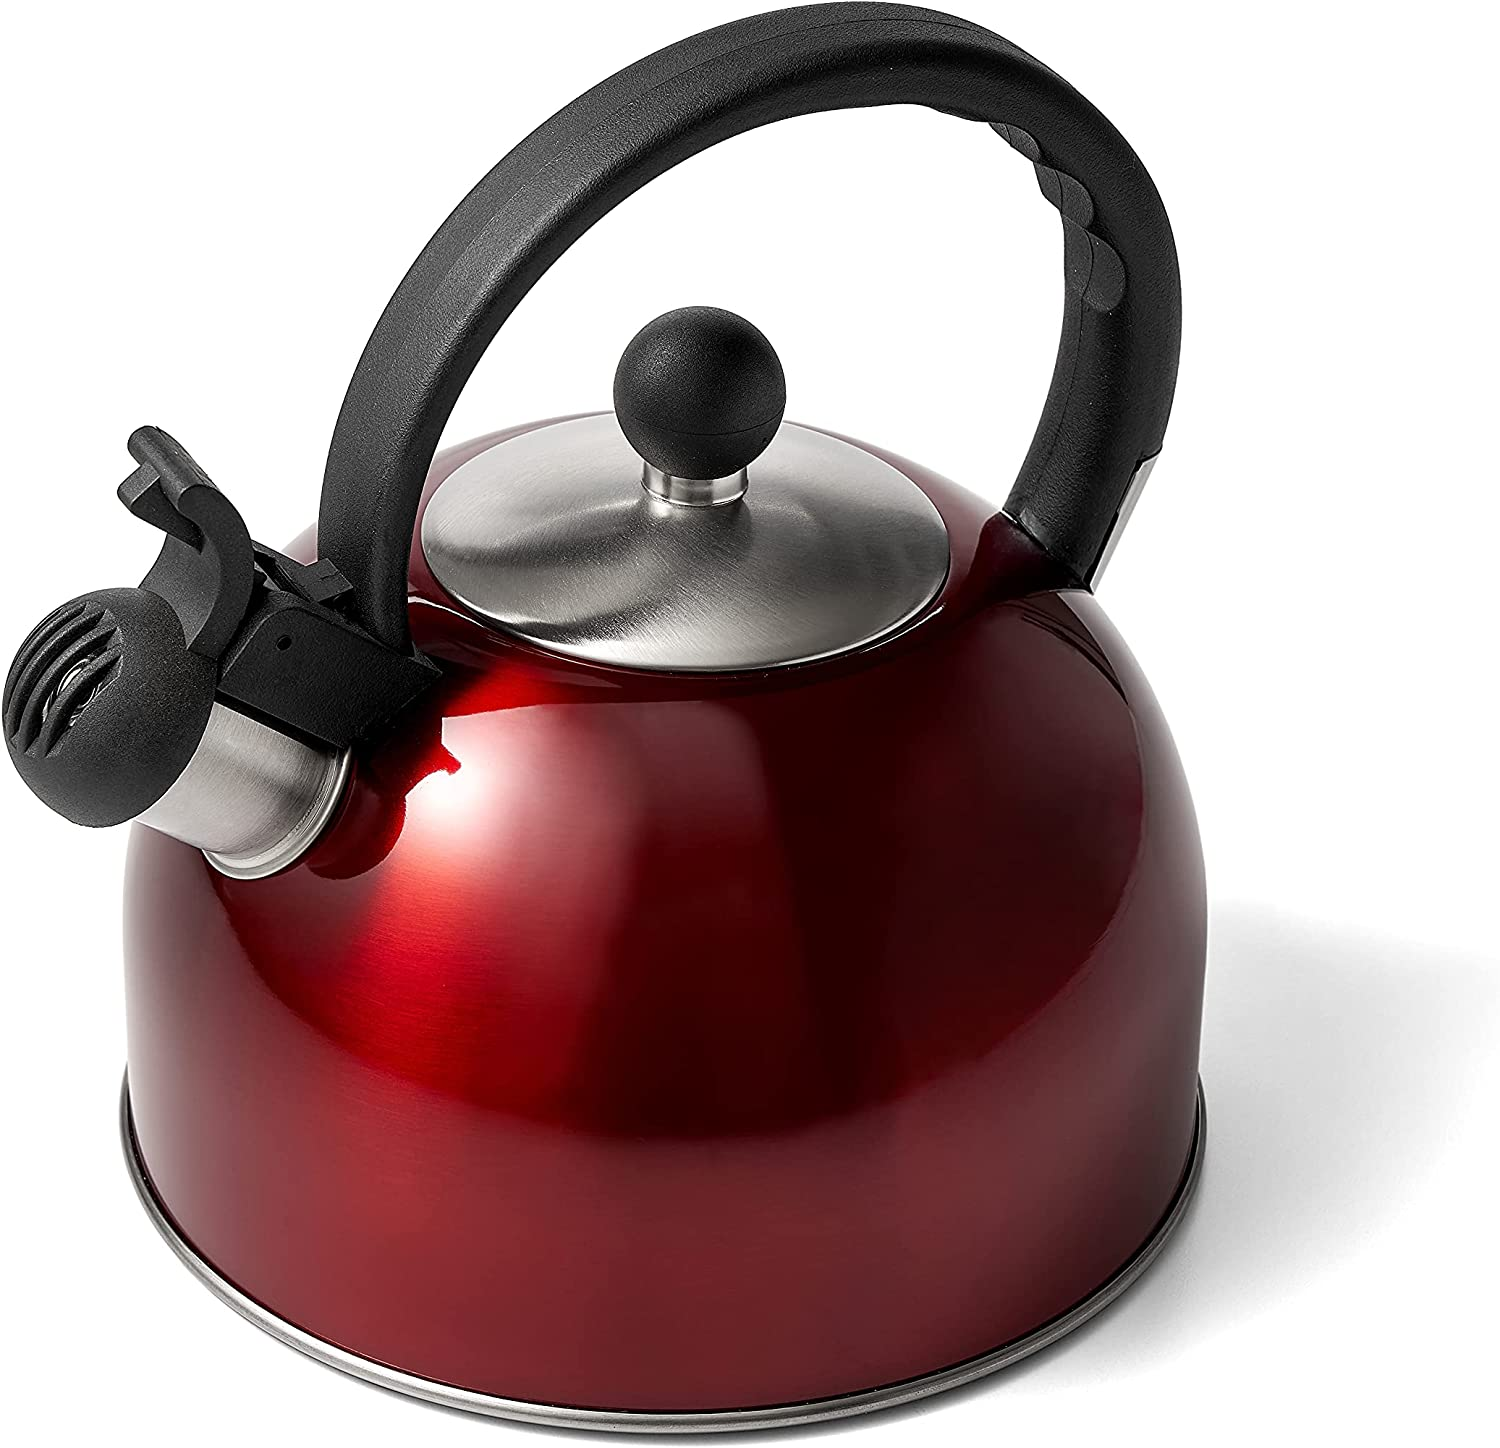 Diamond Home 2.5 Liter Special sale item Stainless Steel Max 80% OFF Mo Tea Kettle Whistling -